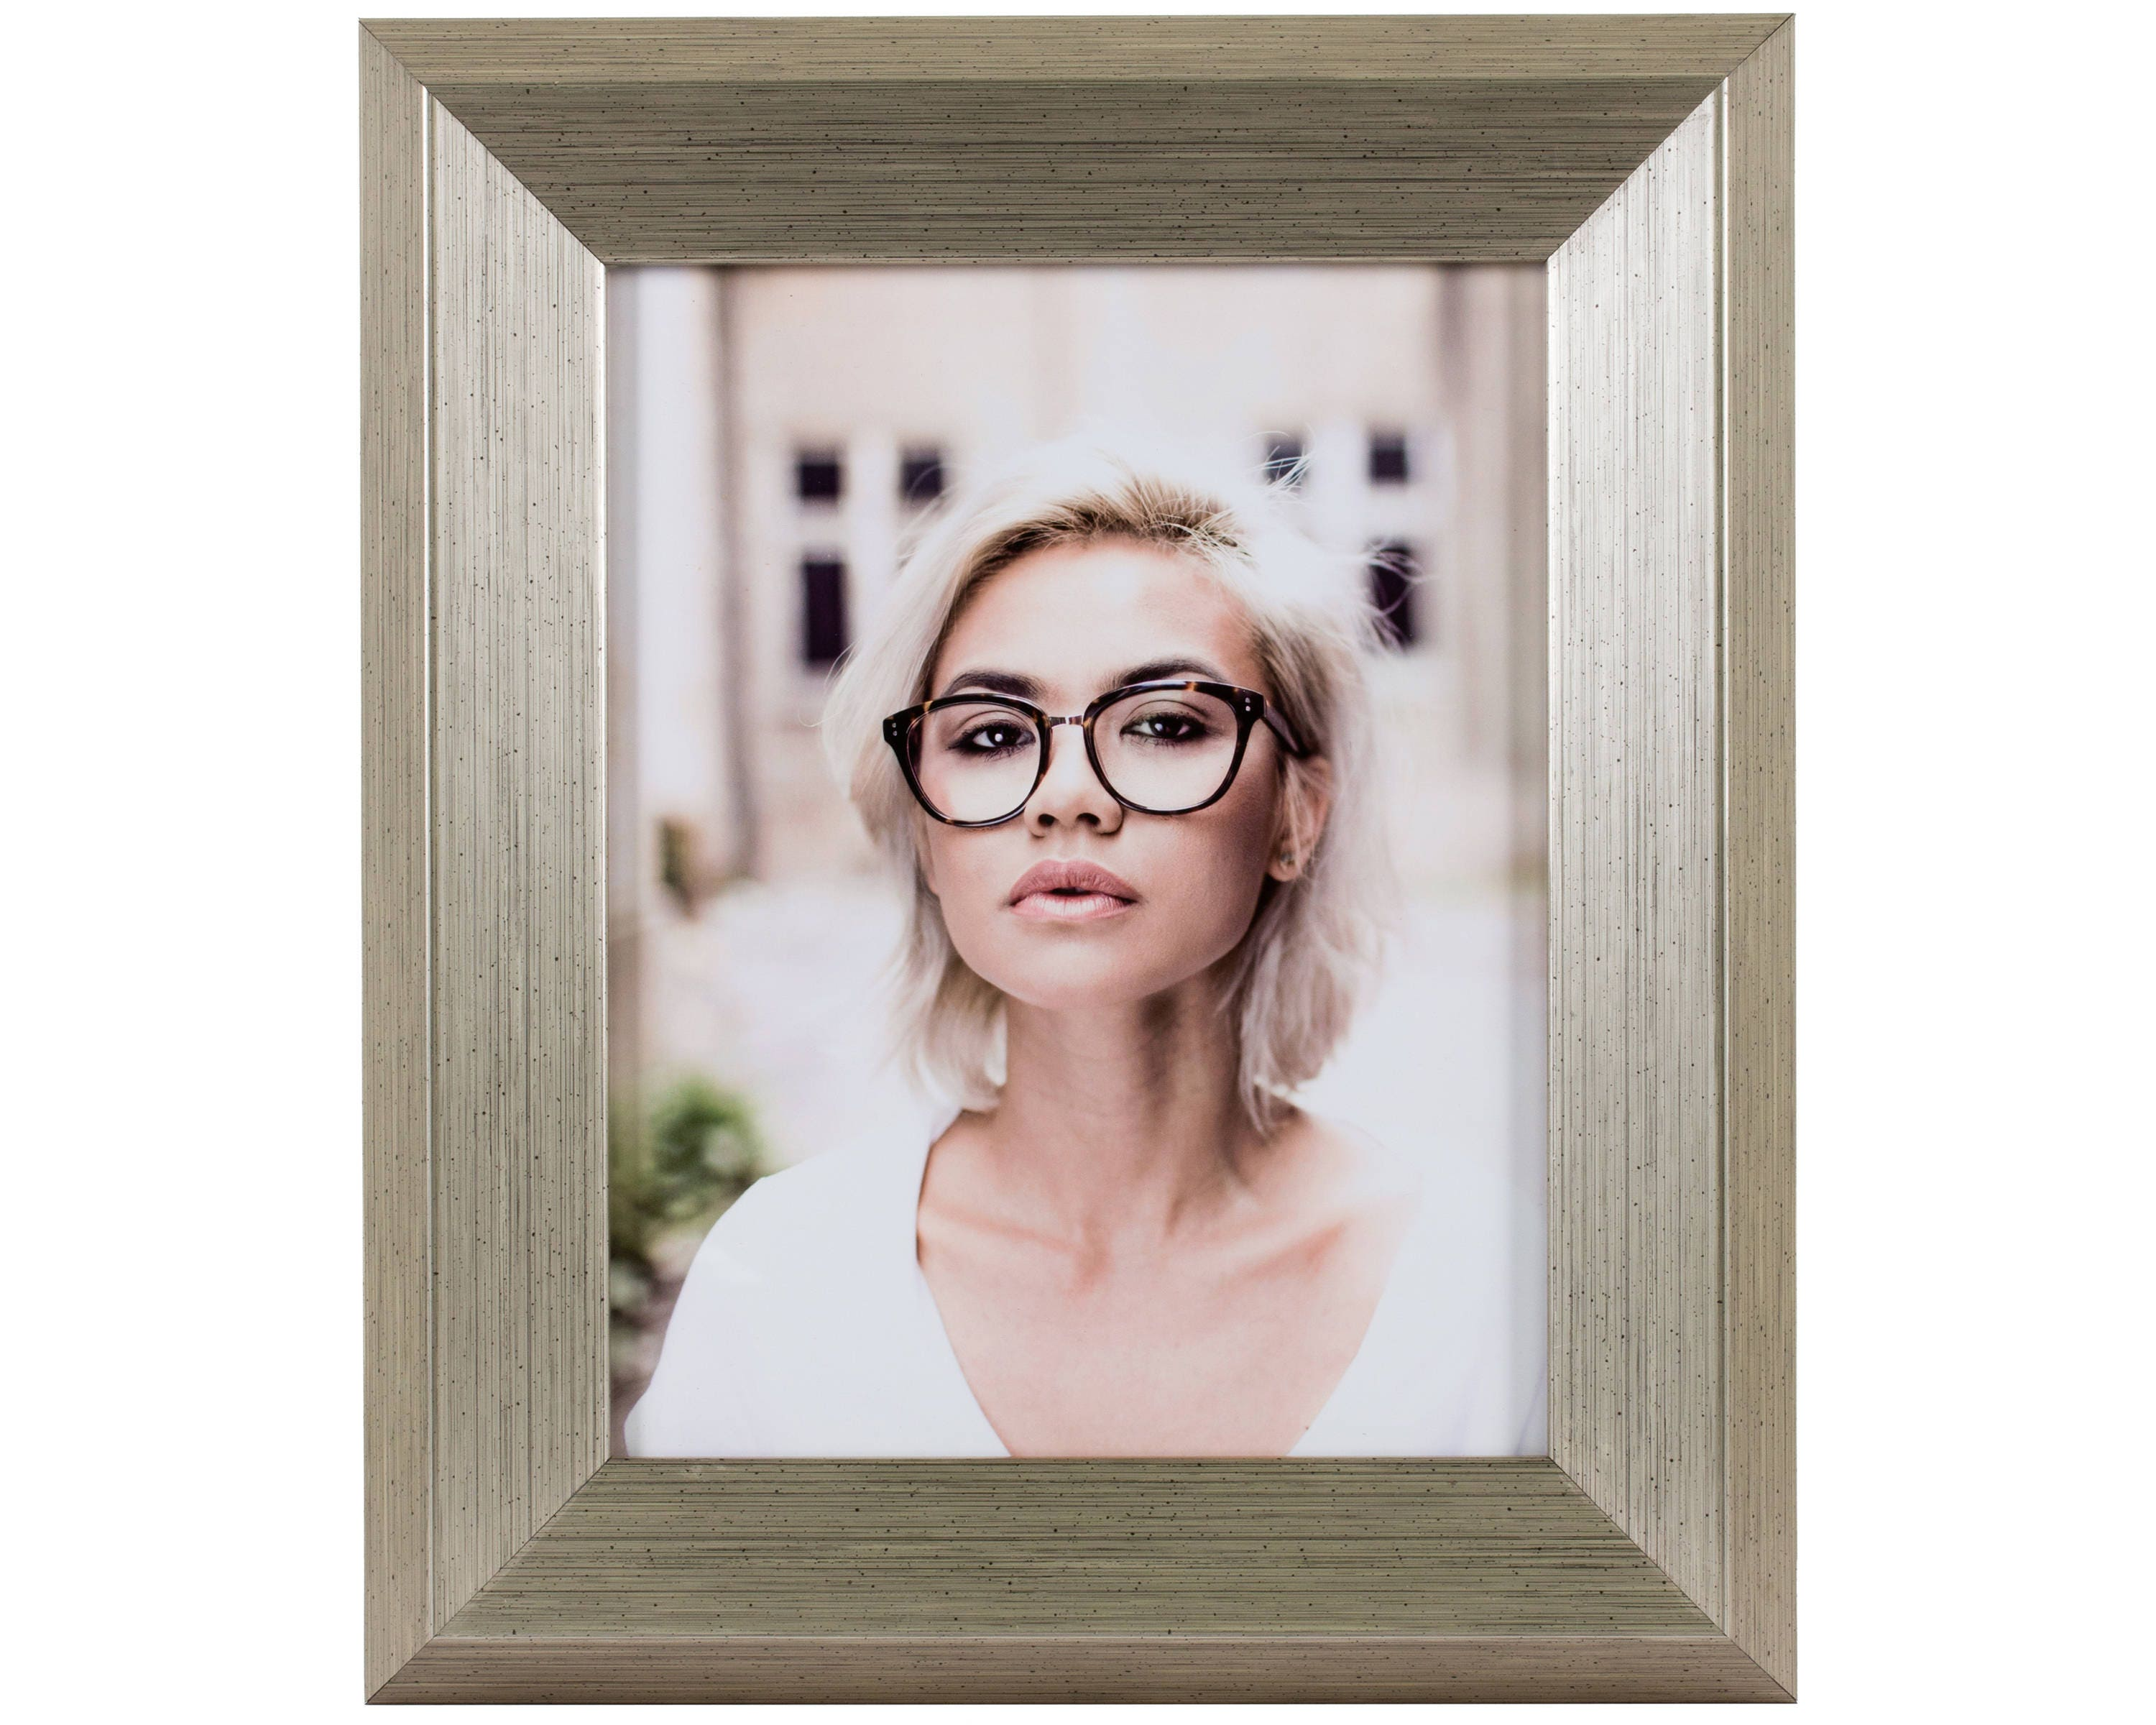 Craig frames 19x25 inch brushed silver and black picture frame sold by craigframes jeuxipadfo Image collections